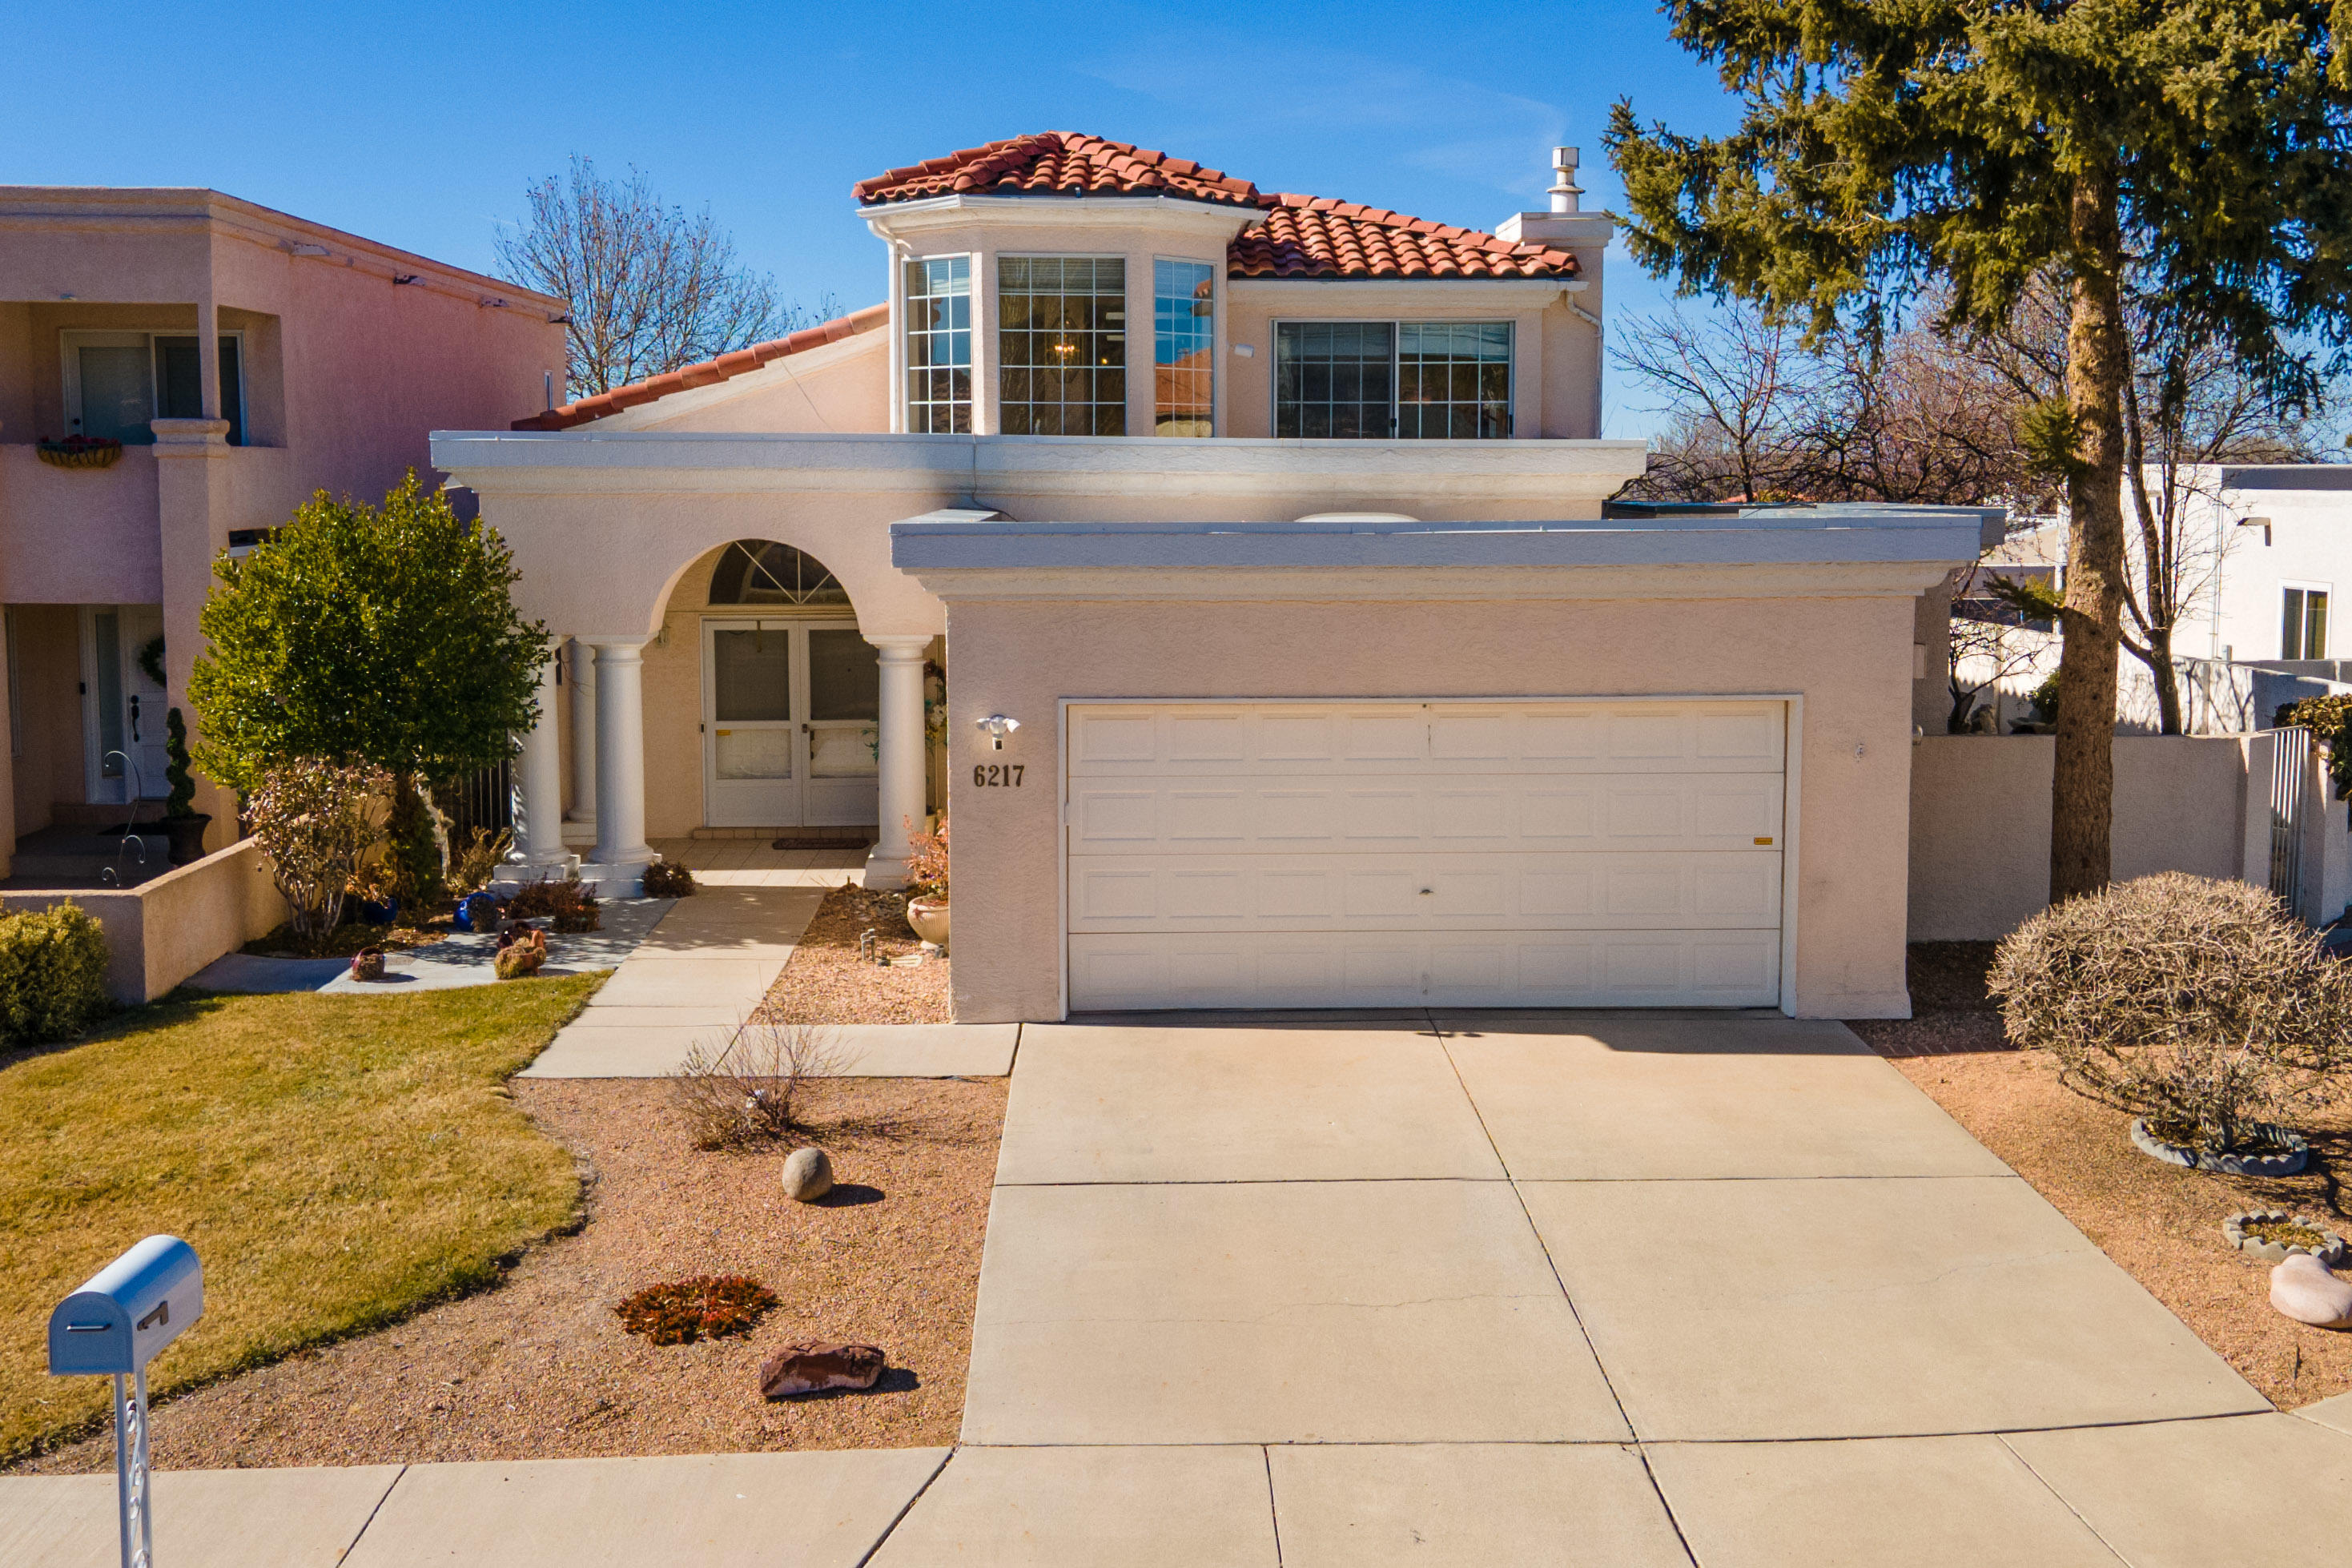 Highly sought after NE heights location with abundant SMART HOME features. Open loft/study with stunning views of the Sandias. Natural light from windows & skylights. Recently remodeled kitchen with granite countertops.Convenient to shopping & entertainment.  Additional space in garage perfect for workspace or storage.Backyard has pear, cherry, peach and apple trees. Pre-inspections completed and attached. Please see amenity list attached identifying all that conveys with property. American Home Shield 1-Year Warranty Included for Systems and Appliances (with an acceptable offer). All furnishings available for sale.